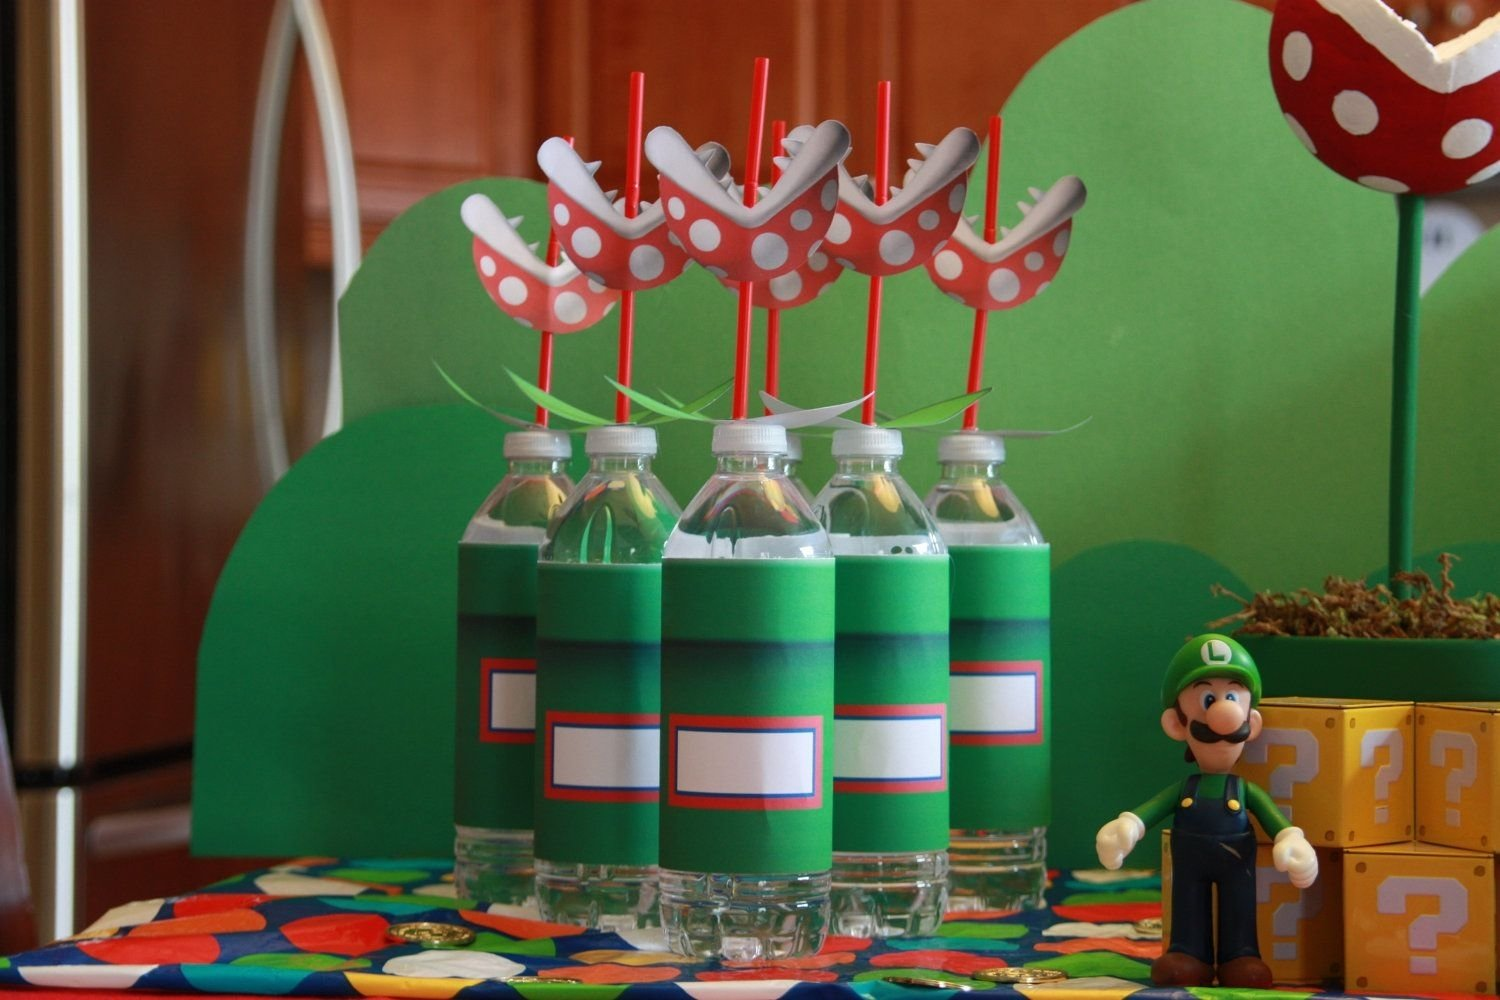 10 Spectacular Mario Brothers Birthday Party Ideas super mario bros party birthday super mariojocelynsparties 2020